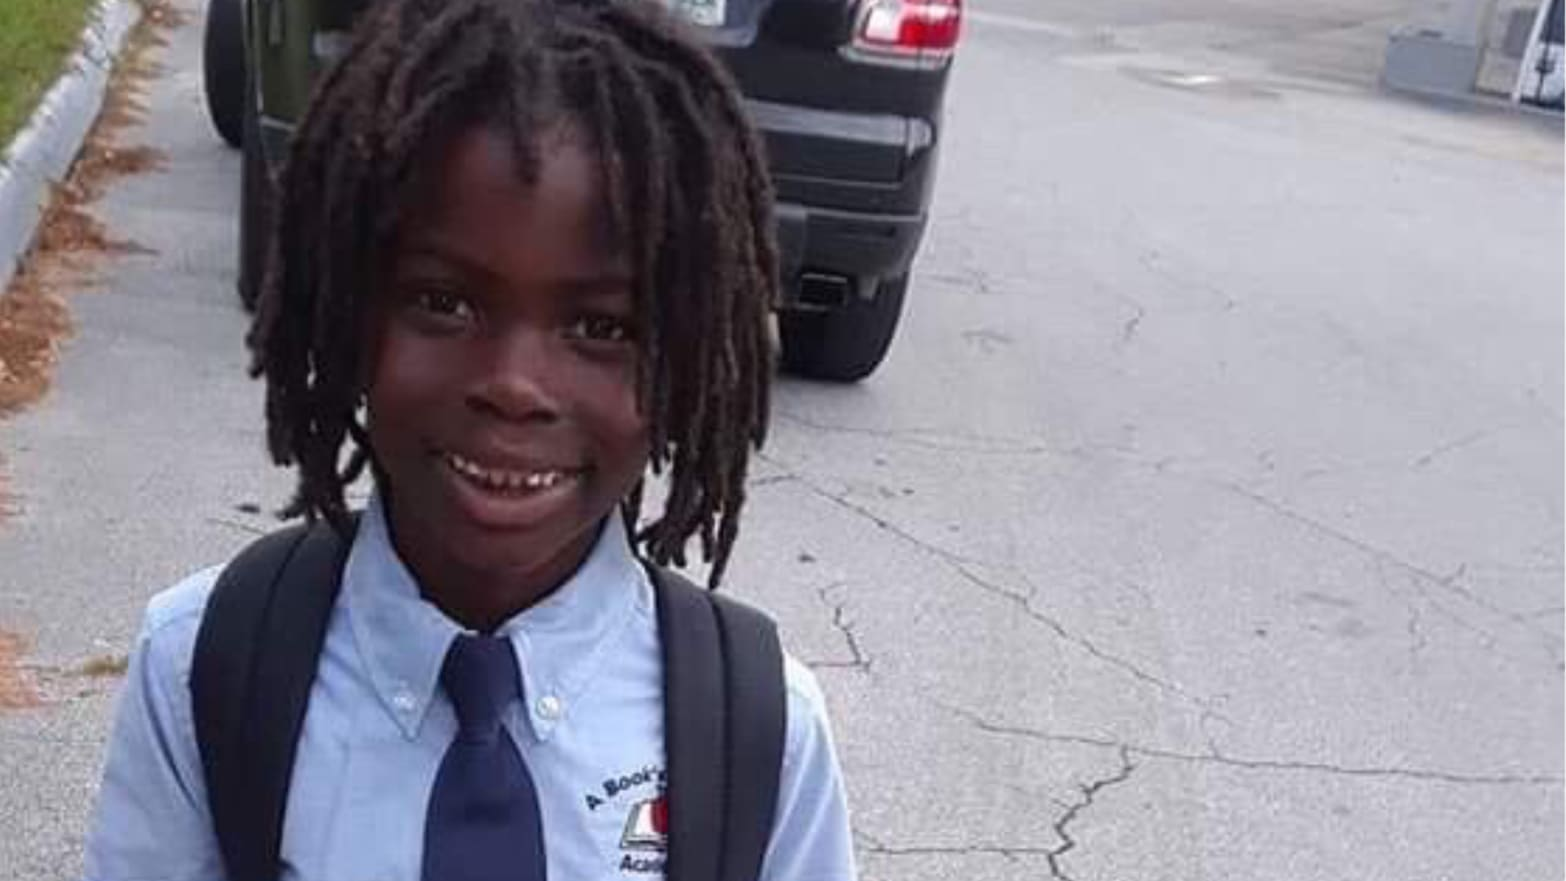 Discriminatory': ACLU, NAACP Go After Florida School That